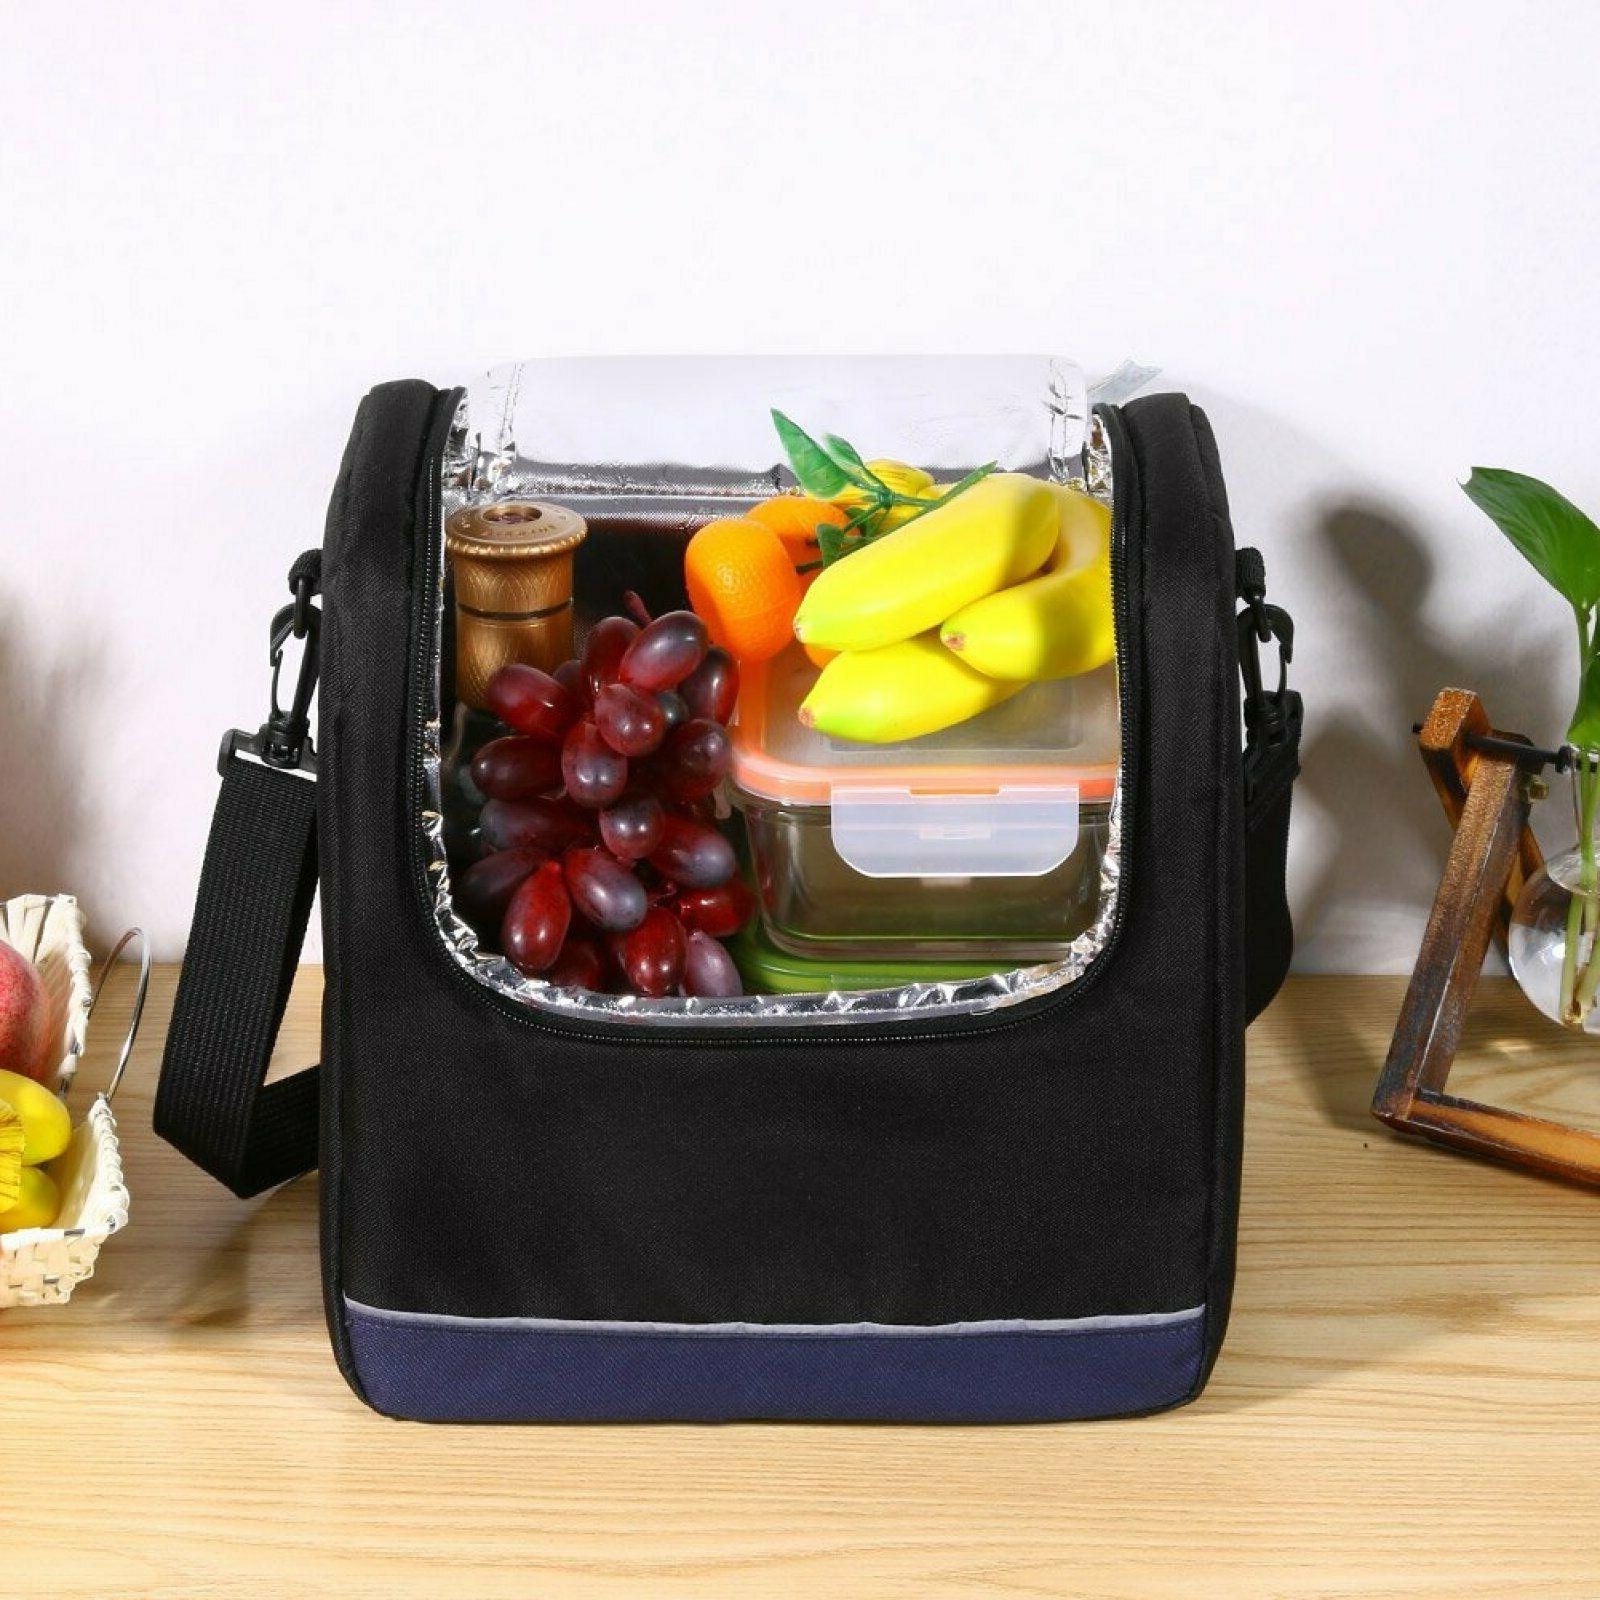 Adult Large Insulated Lunch Bag for Kids Work,Larger Lunch Box Tote